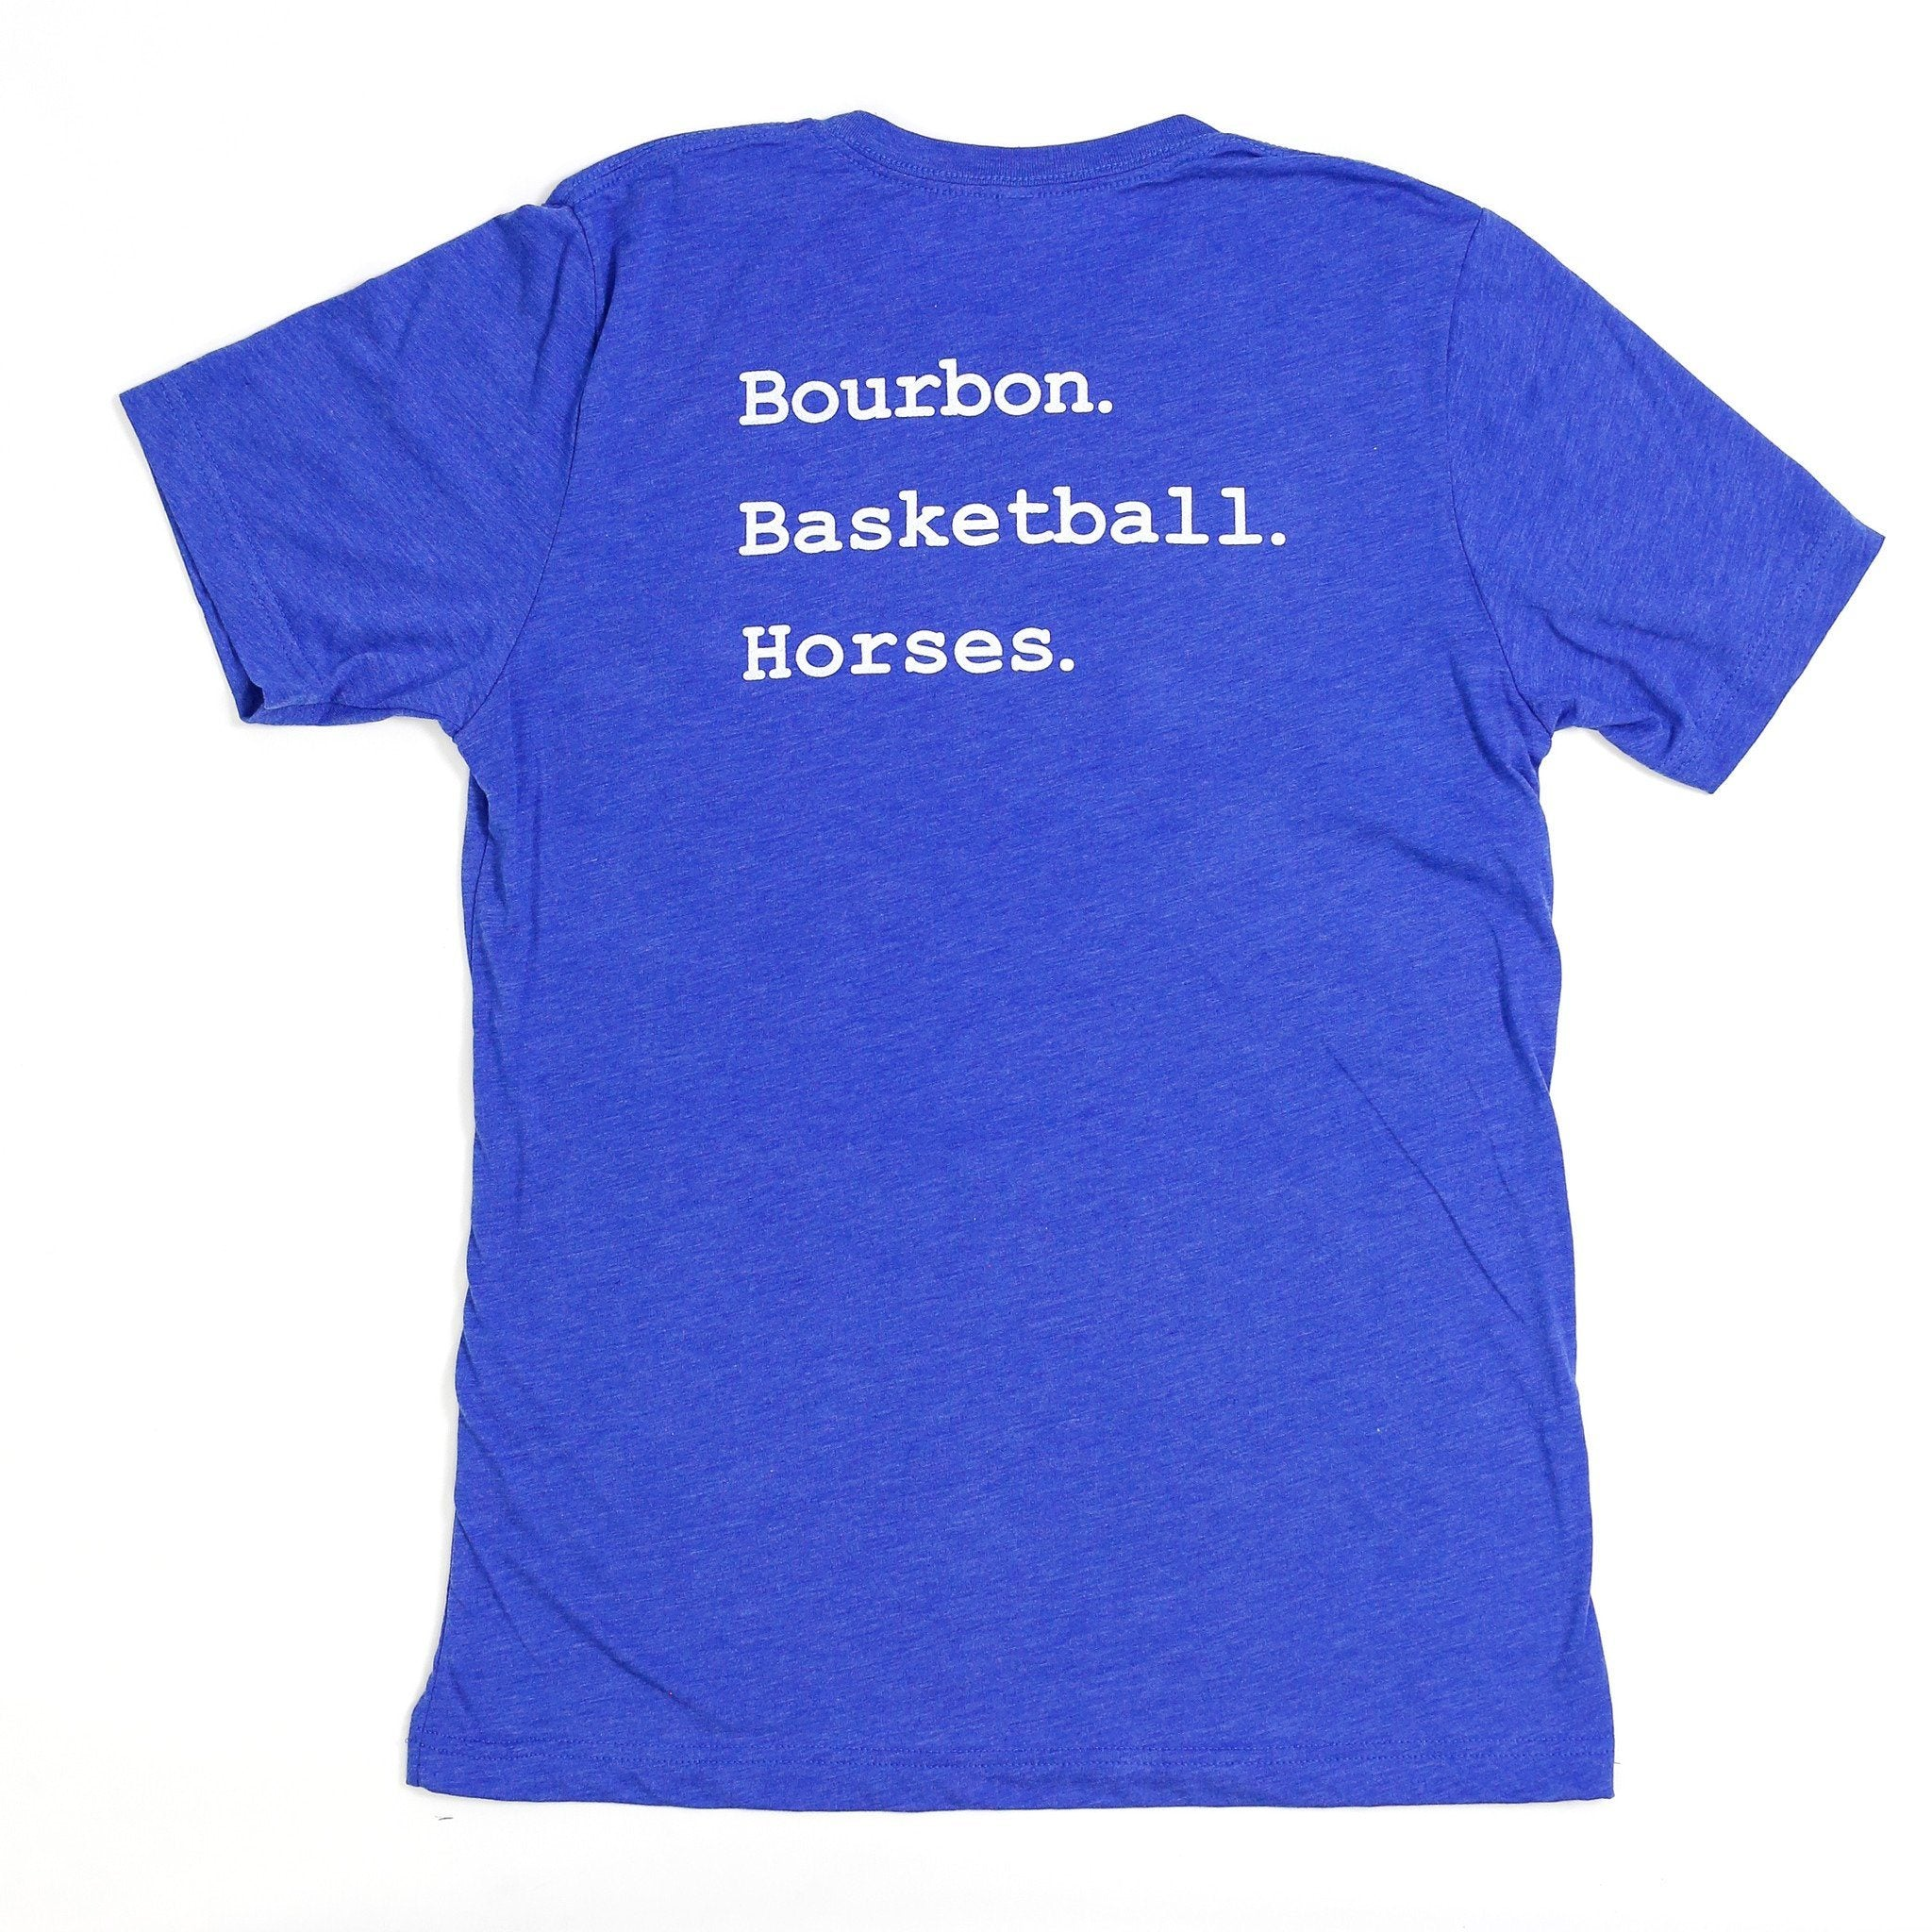 Bourbon. Basketball. Horses. Blue - Bourbon Outfitter